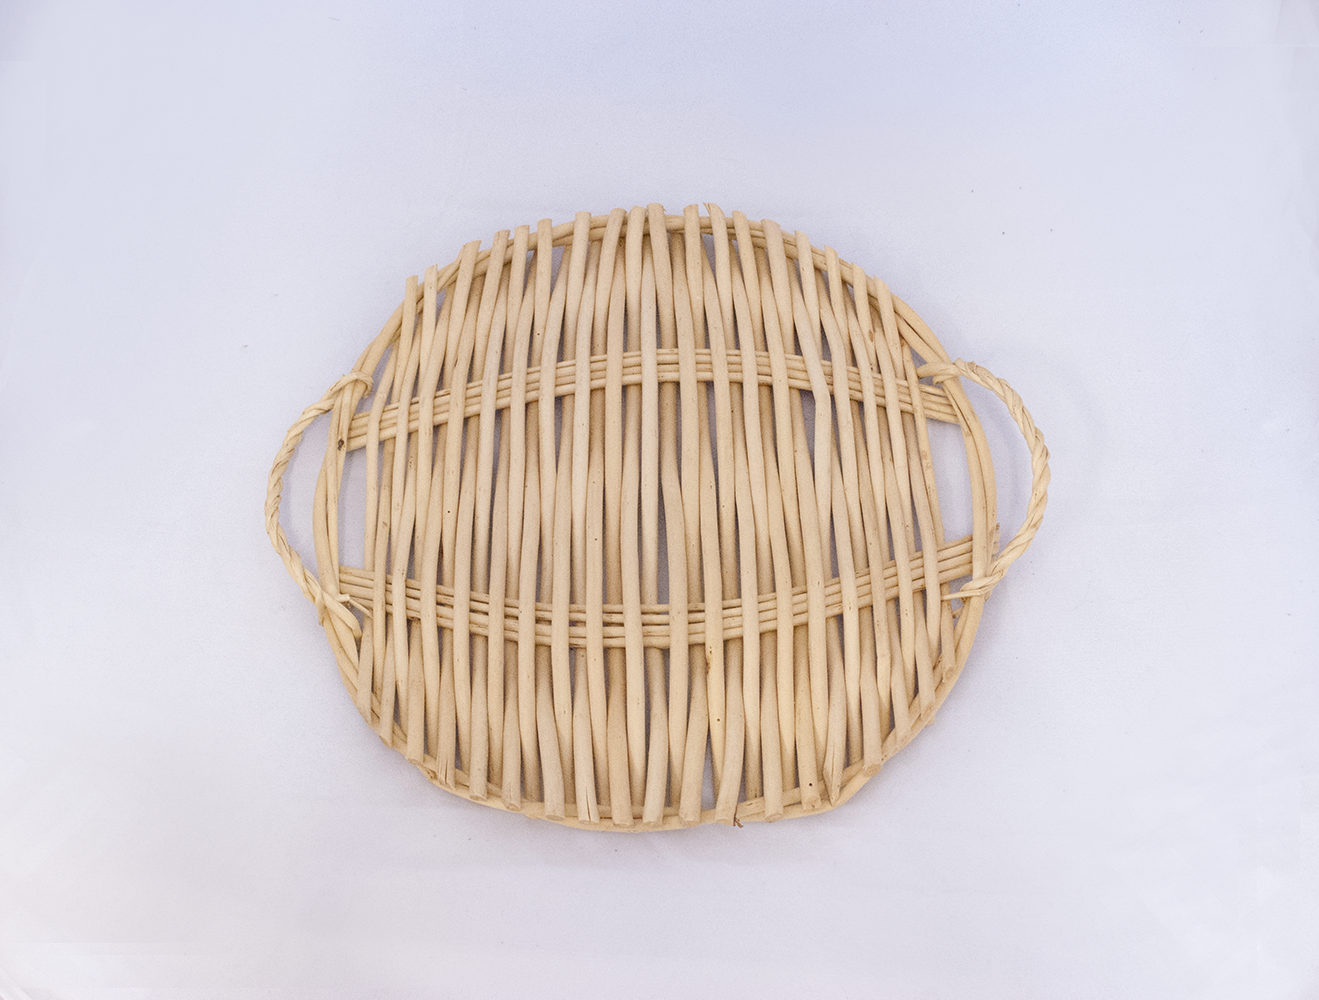 wicker charger   Quantity: 9  Price: $2.50